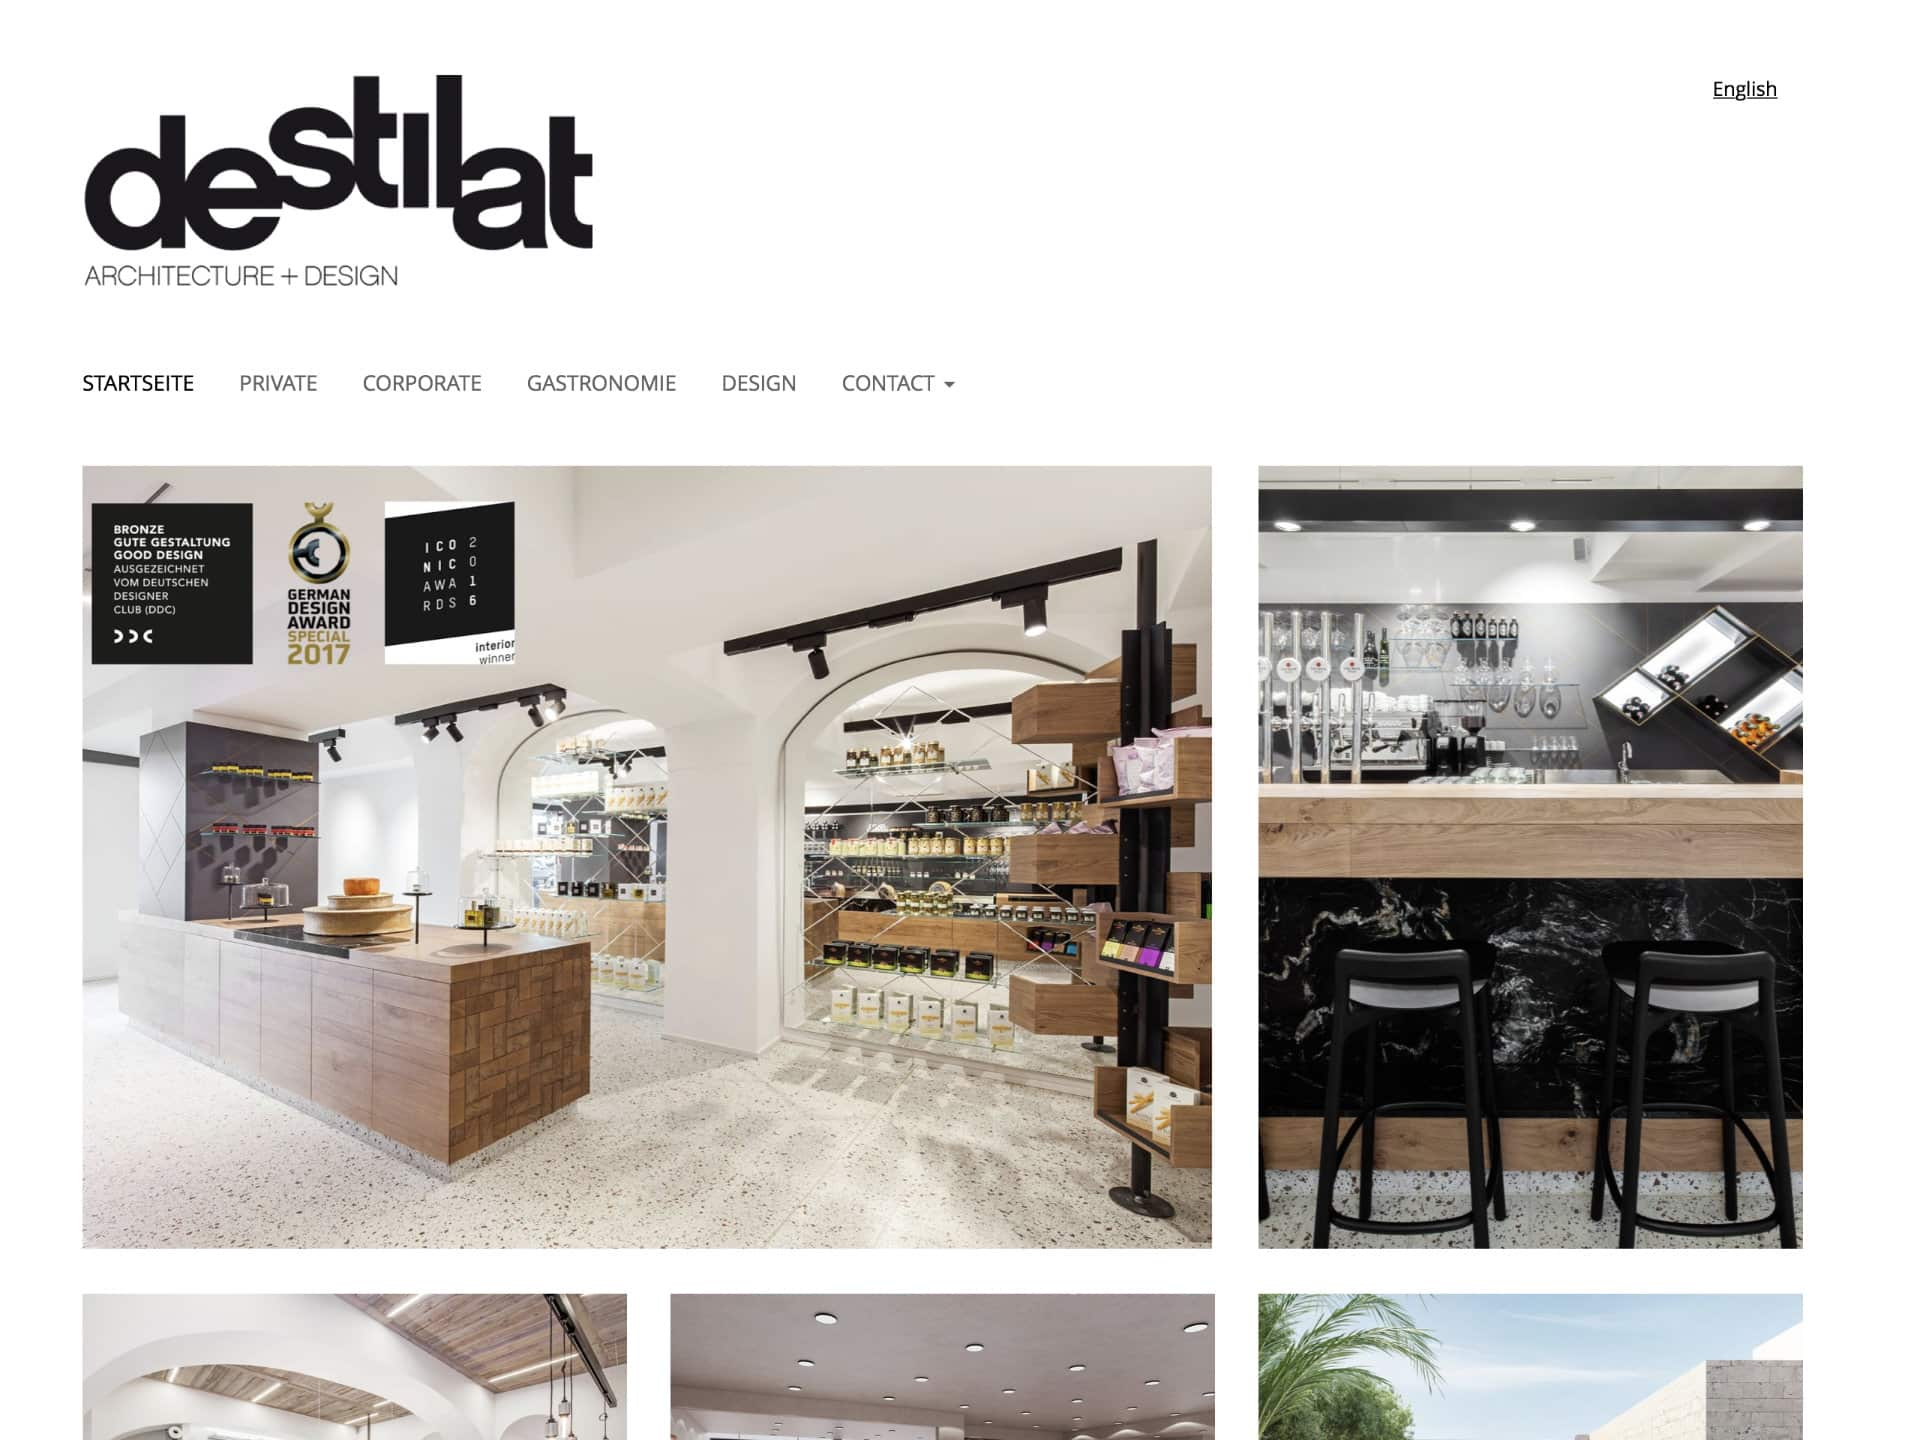 destilat Architektur + Design Website